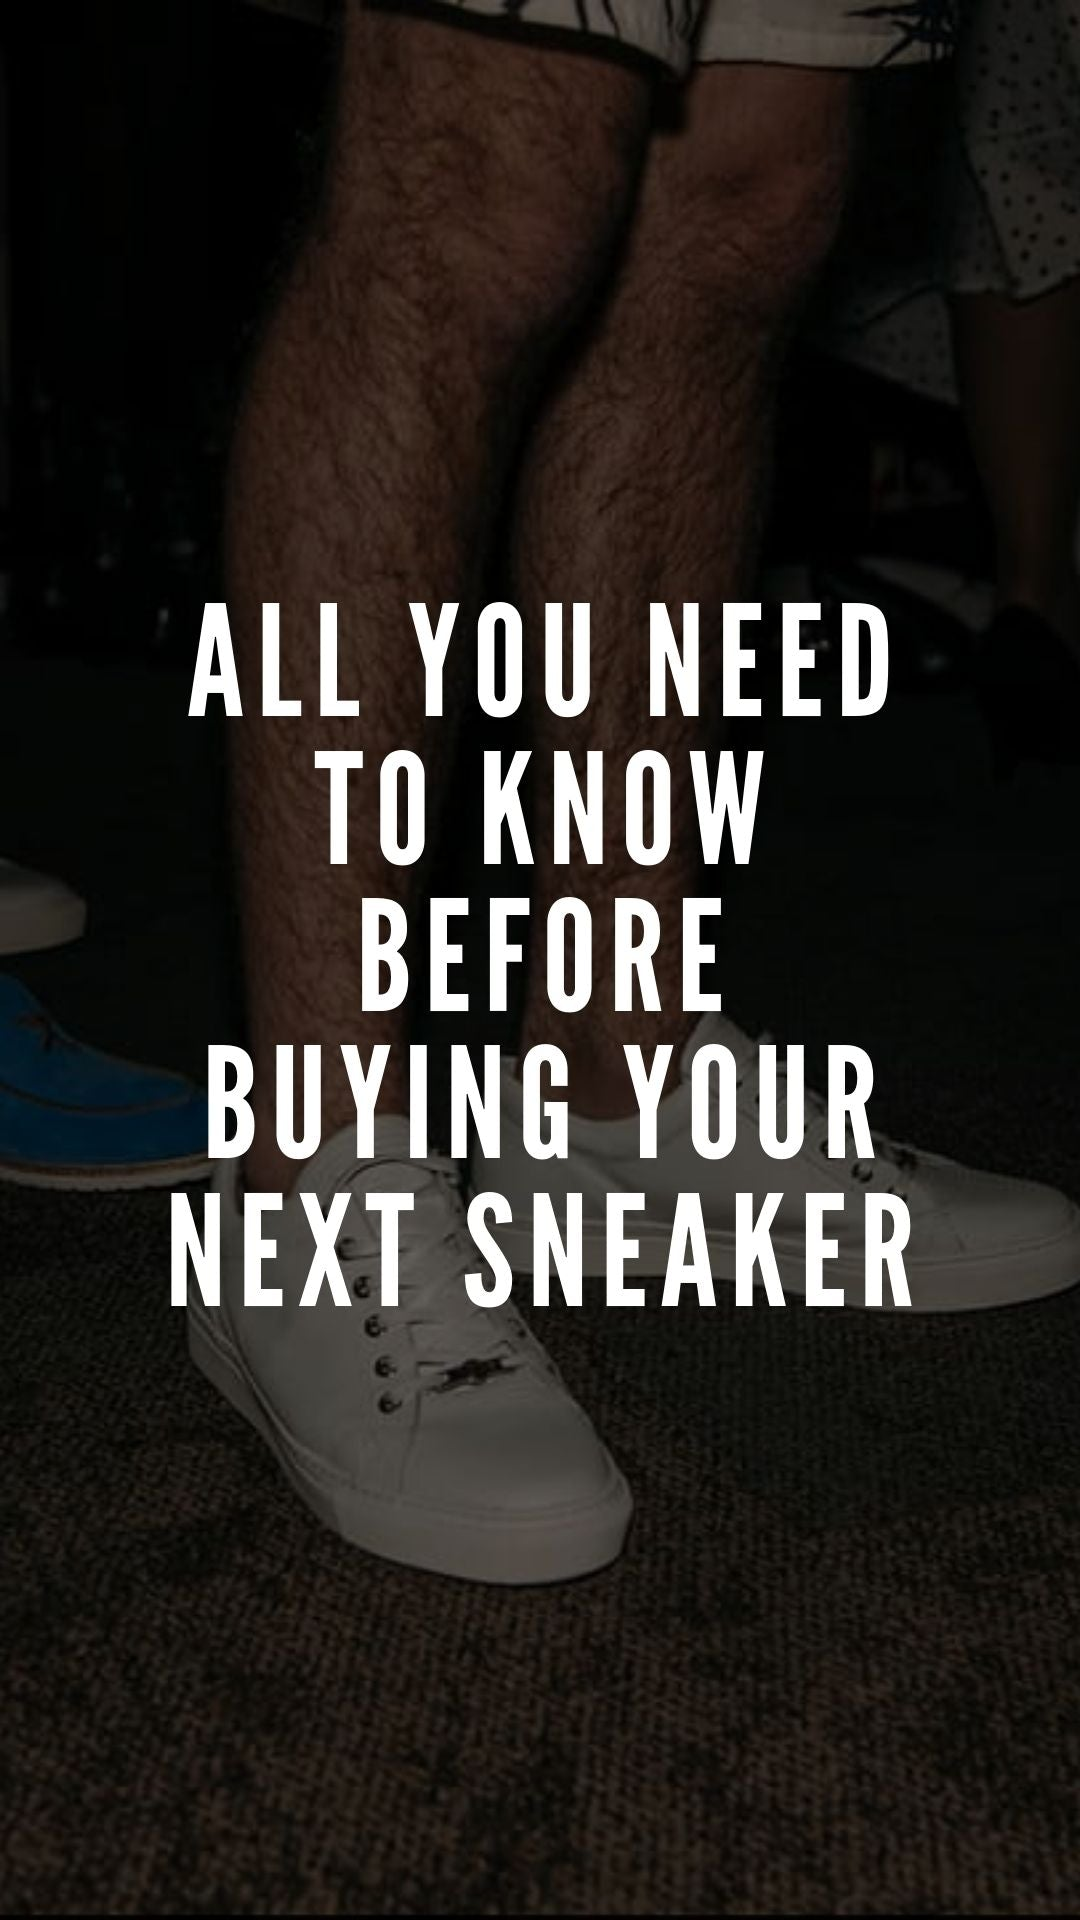 All You Need To Know Before Buying Your Next Sneaker